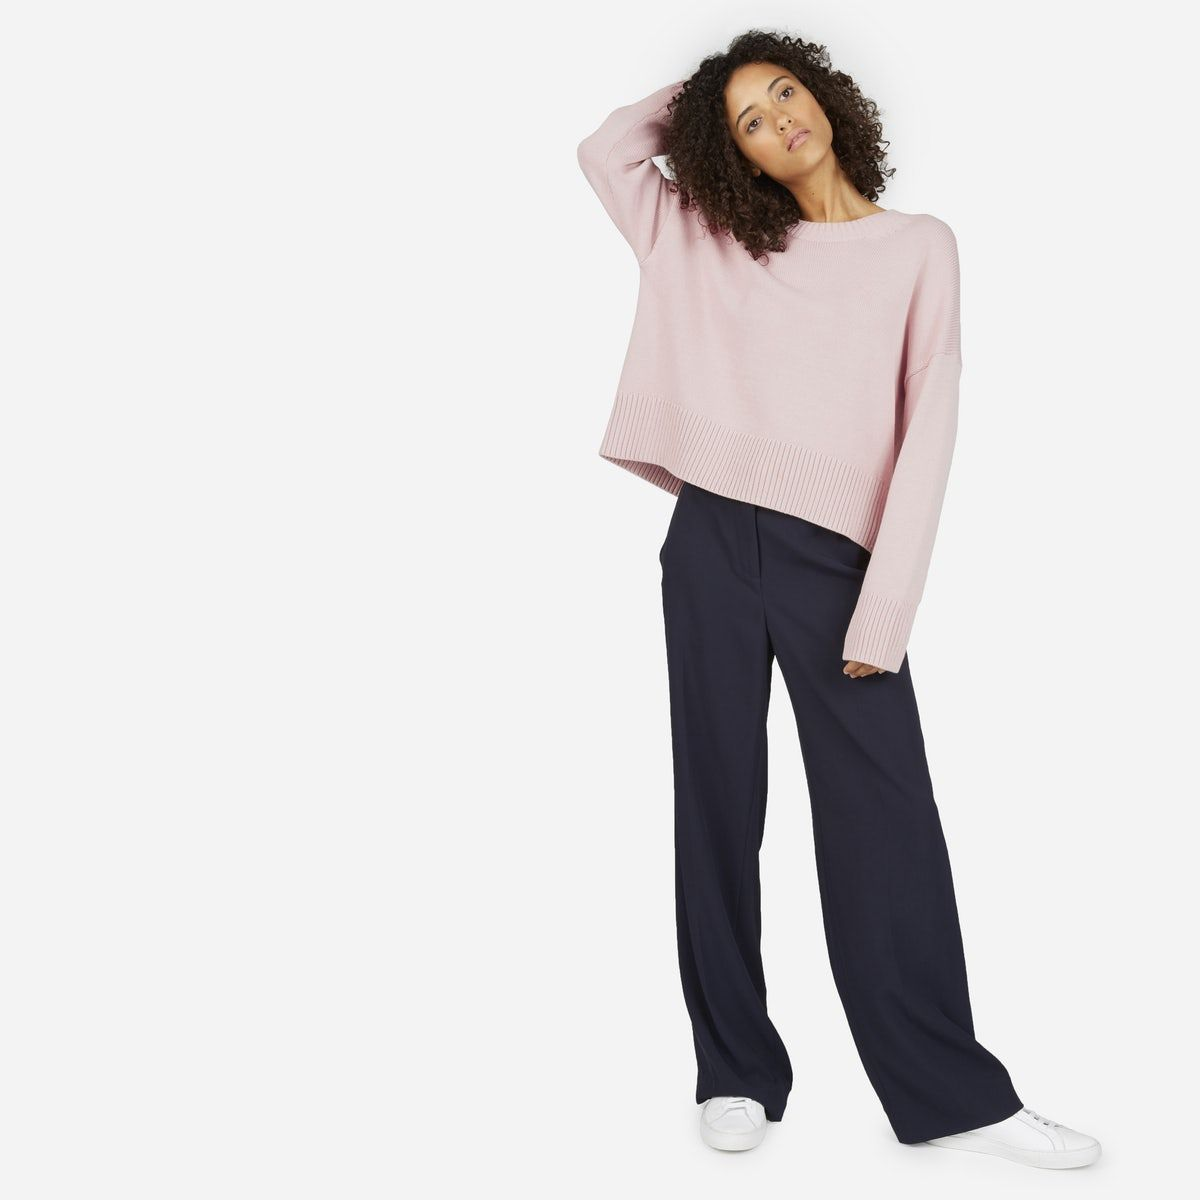 The Soft Cotton Square Crew | Cotton sweater, Layering and Cotton